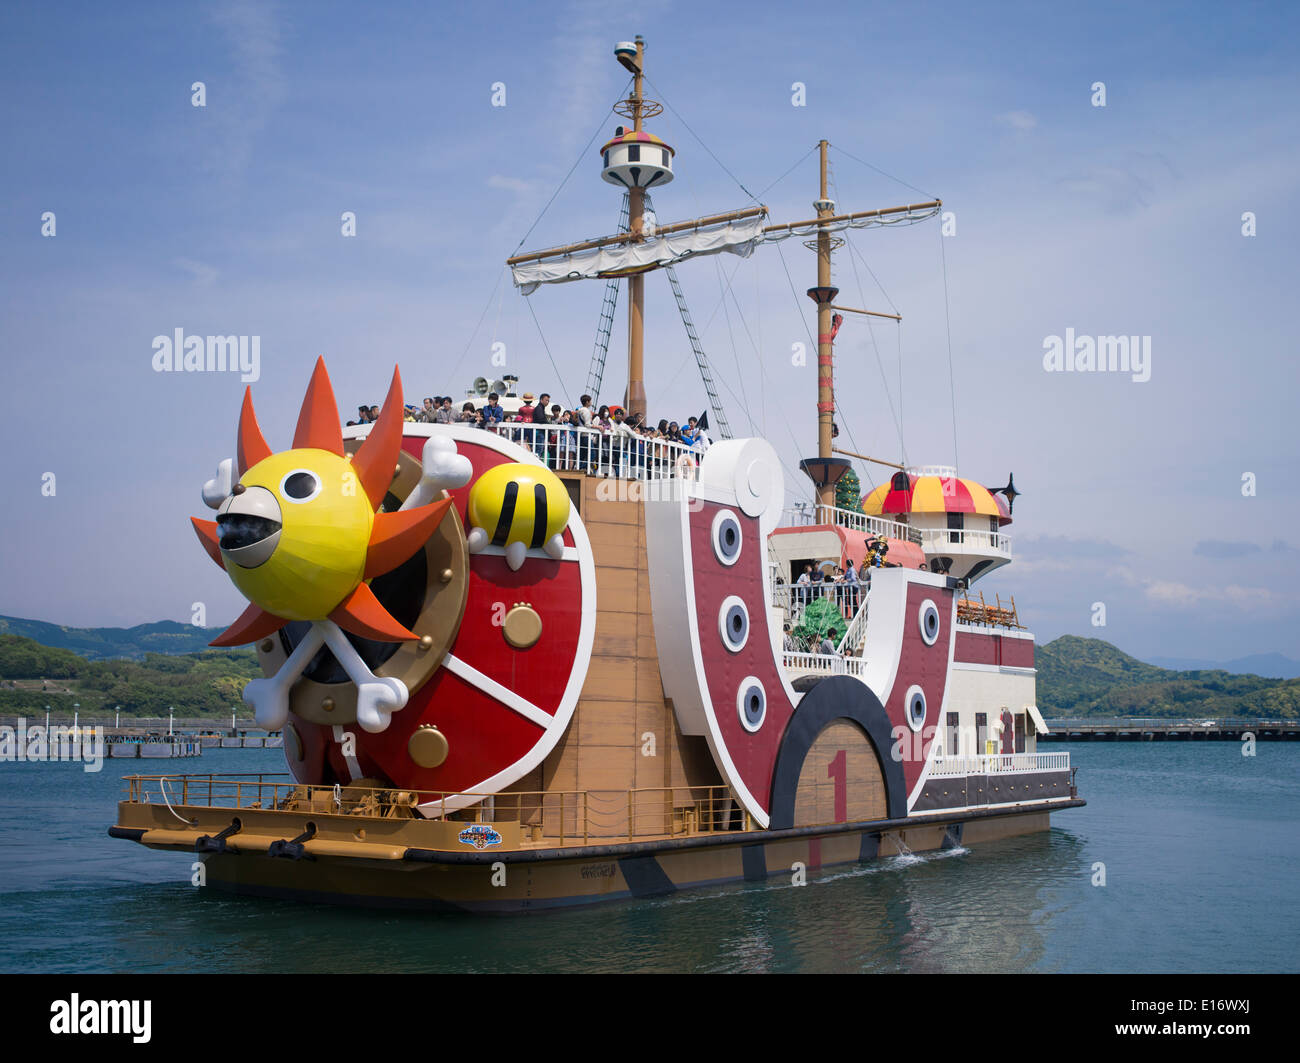 One Piece Boat Japanese Anime By Eiichiro Oda At Huis Ten Bosch, A Theme  Park In Sasebo, Nagasaki, Japan.